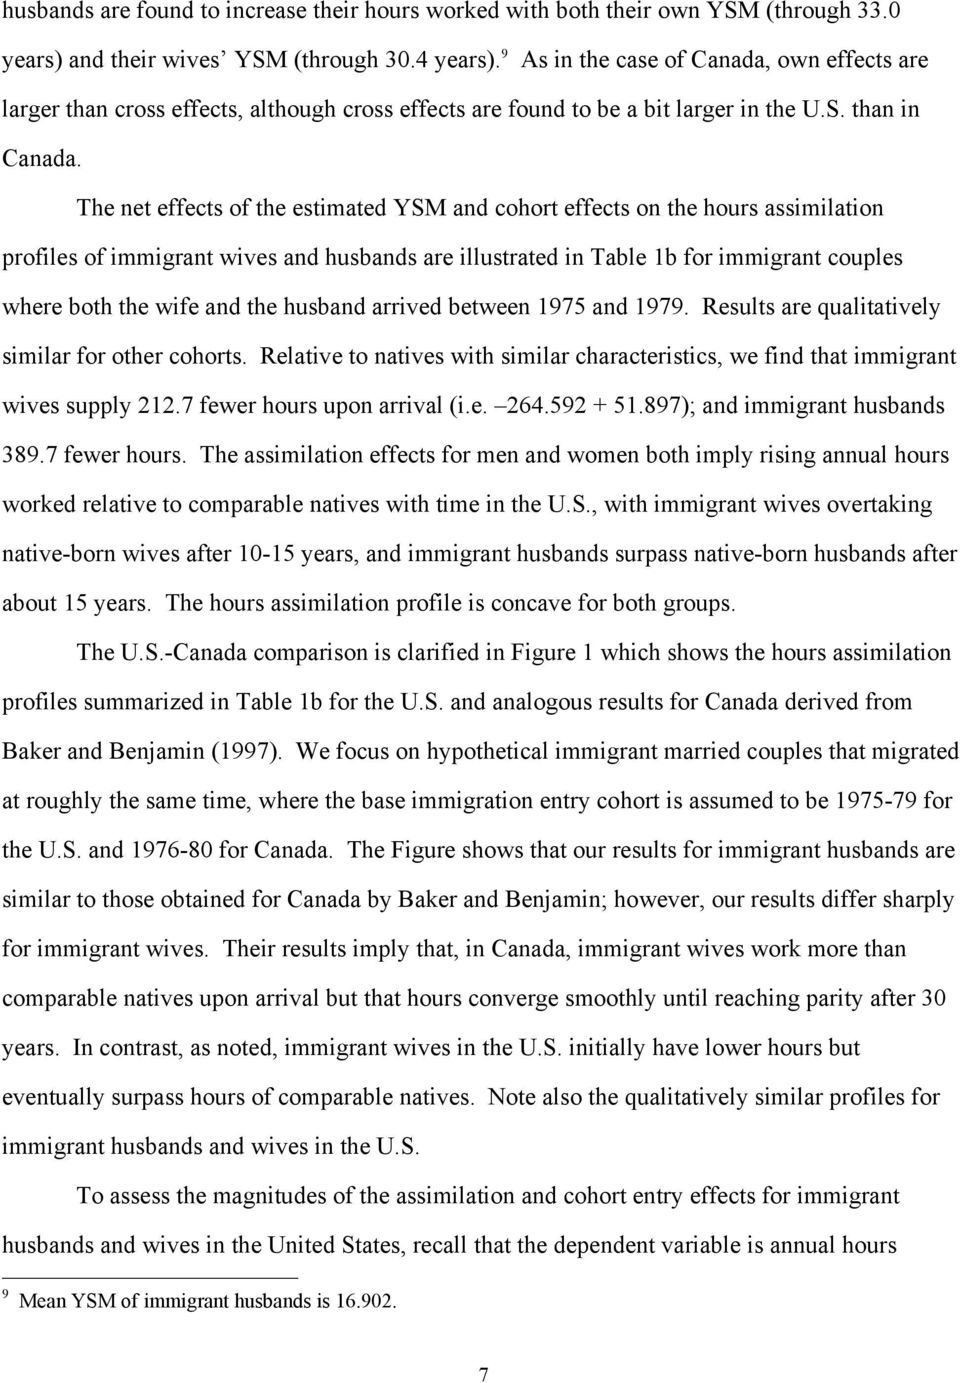 The net effects of the estimated YSM and cohort effects on the hours assimilation profiles of immigrant wives and husbands are illustrated in Table 1b for immigrant couples where both the wife and